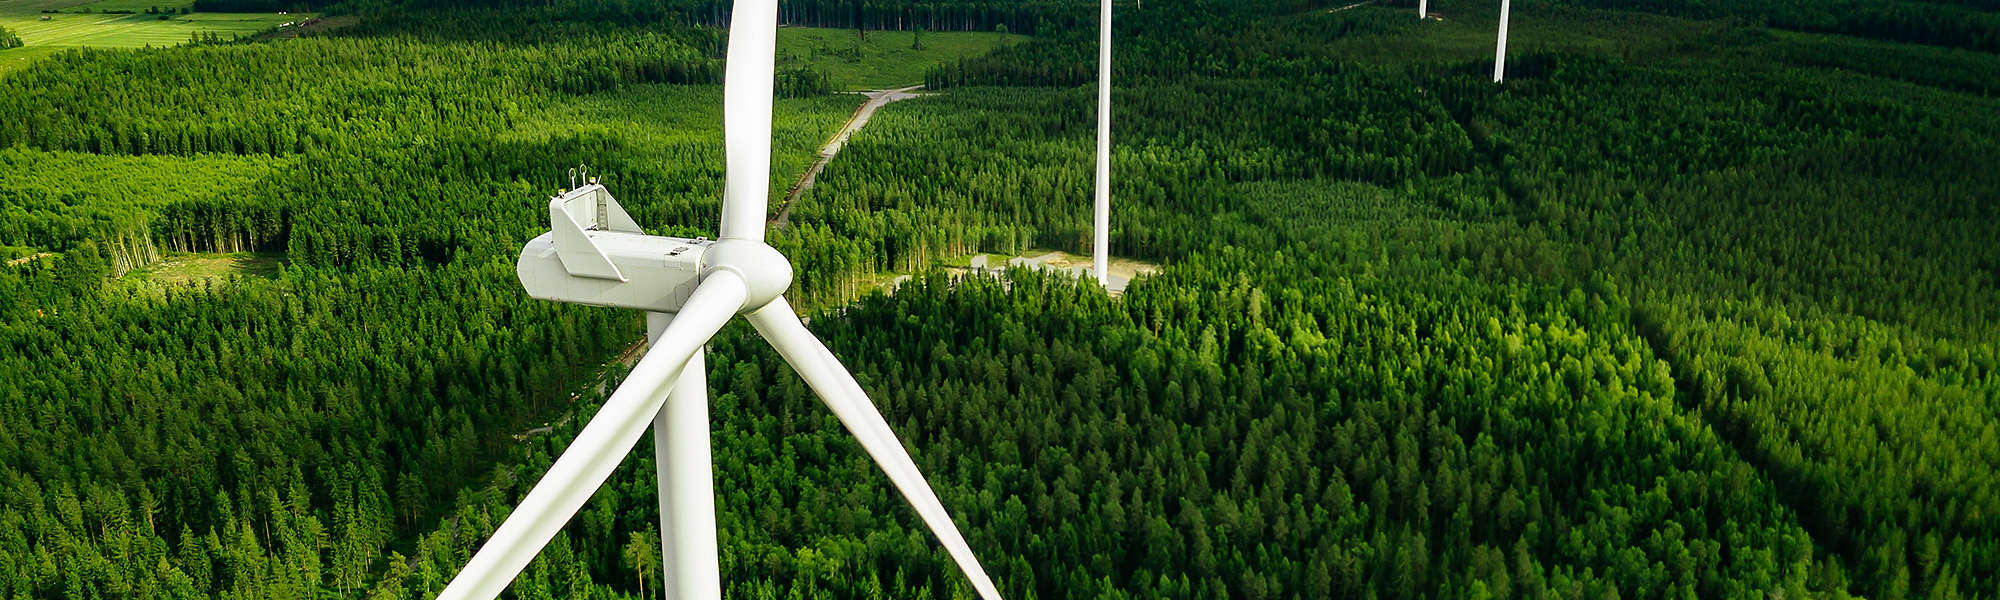 aerial-view-of-windmills